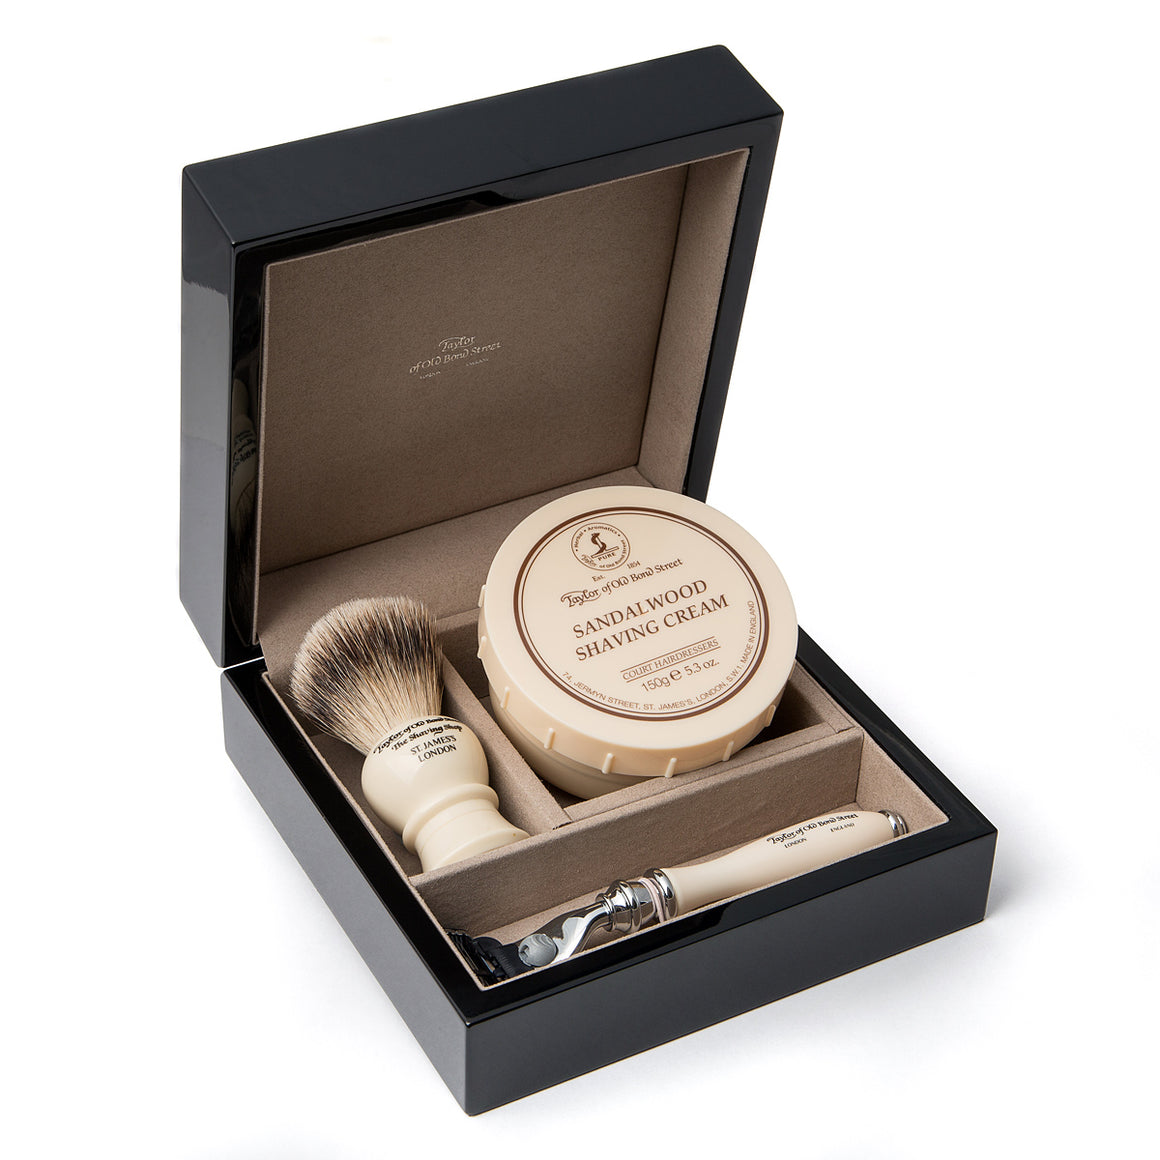 Razor, Brush and Sandalwood Shaving Cream in Wooden Gift Box